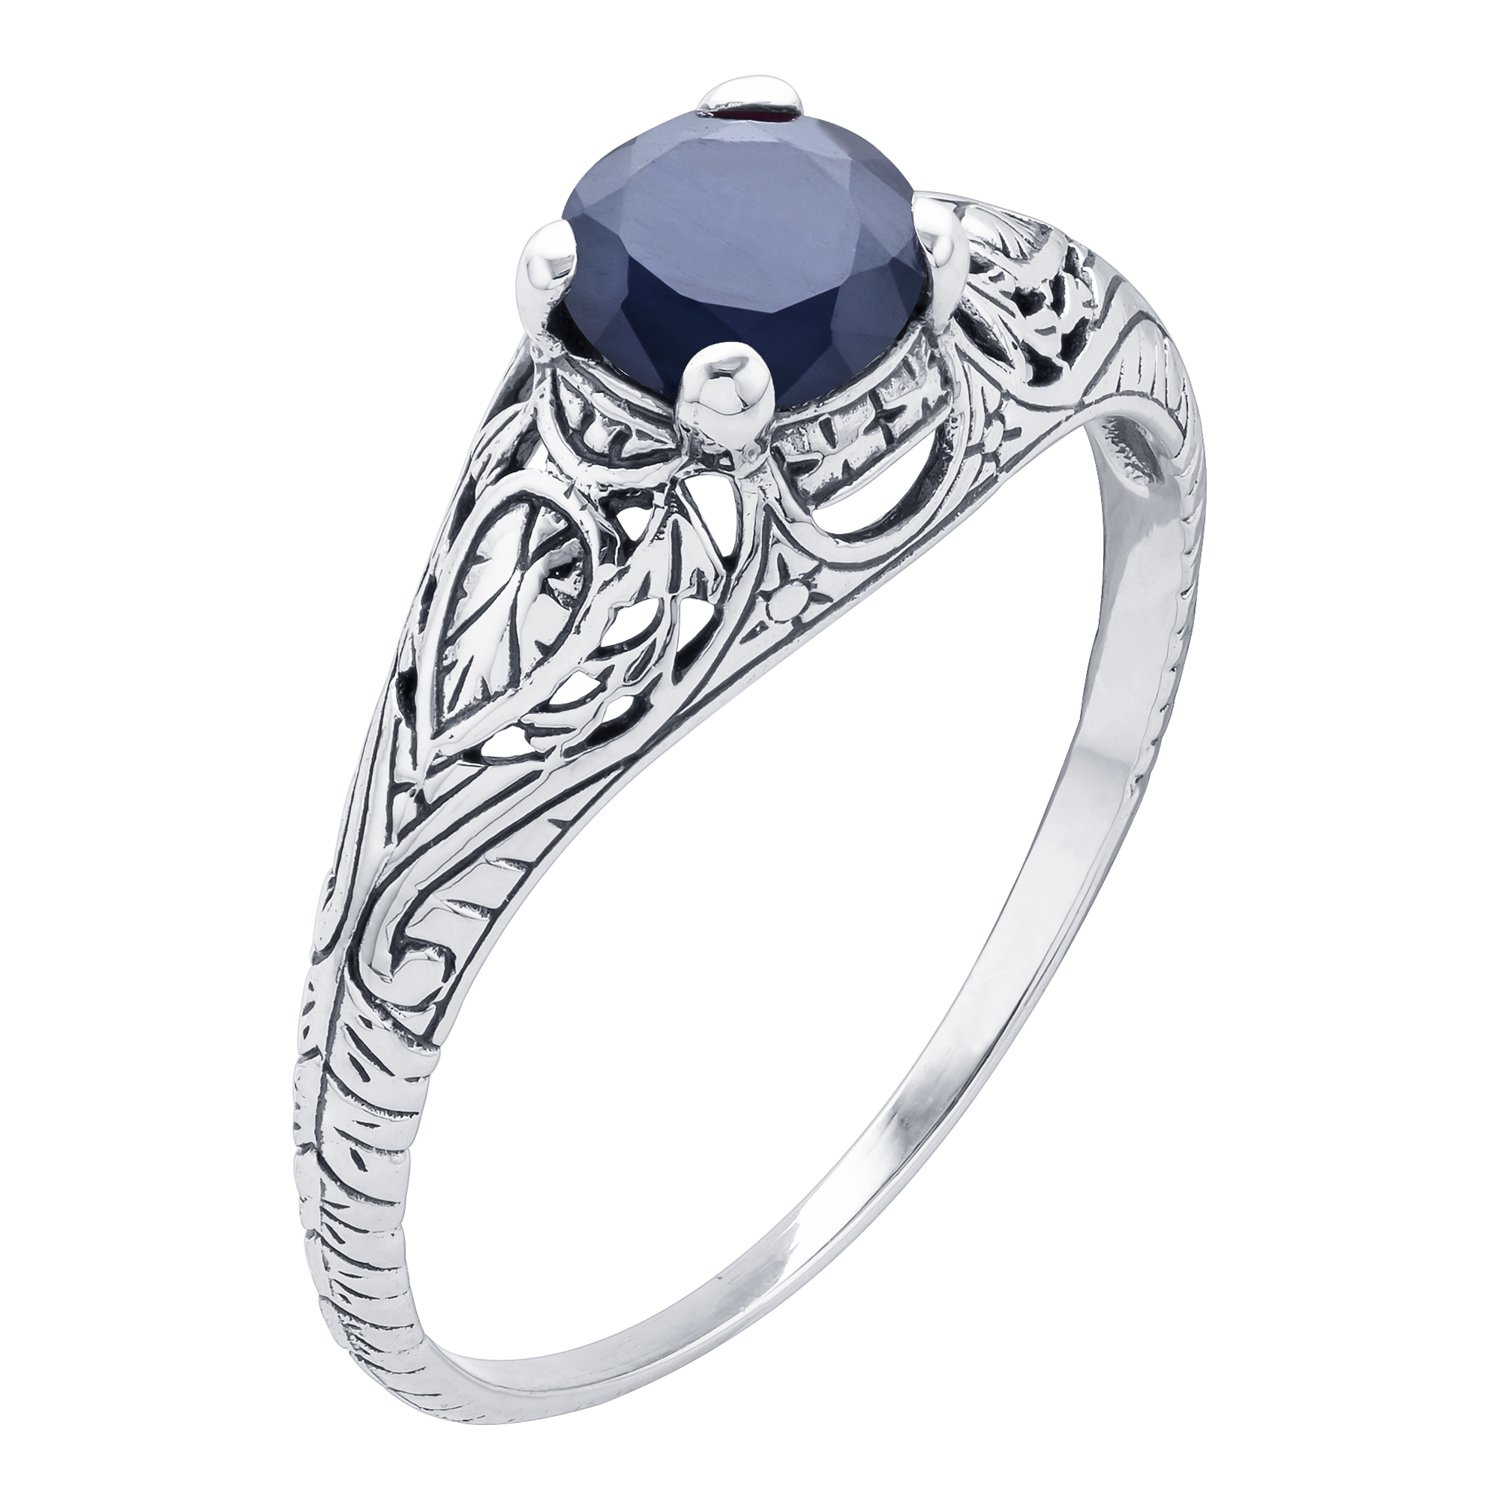 10k White Gold Vintage Style Genuine Round Sapphire Scroll Ring by Instagems (Image #2)